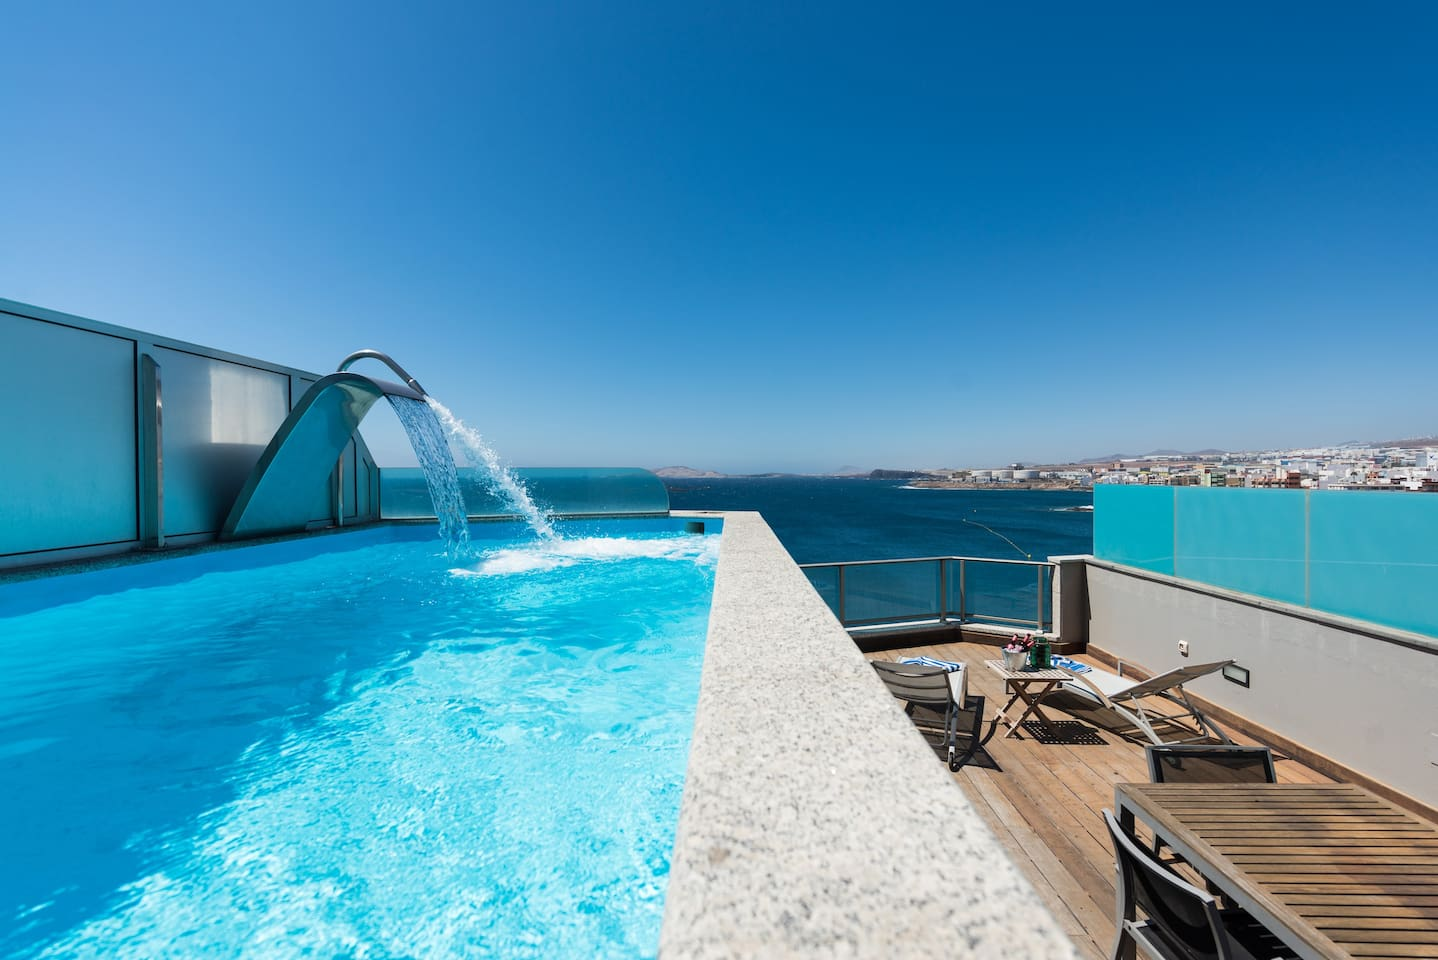 Enjoy our jets in the swimming pool!